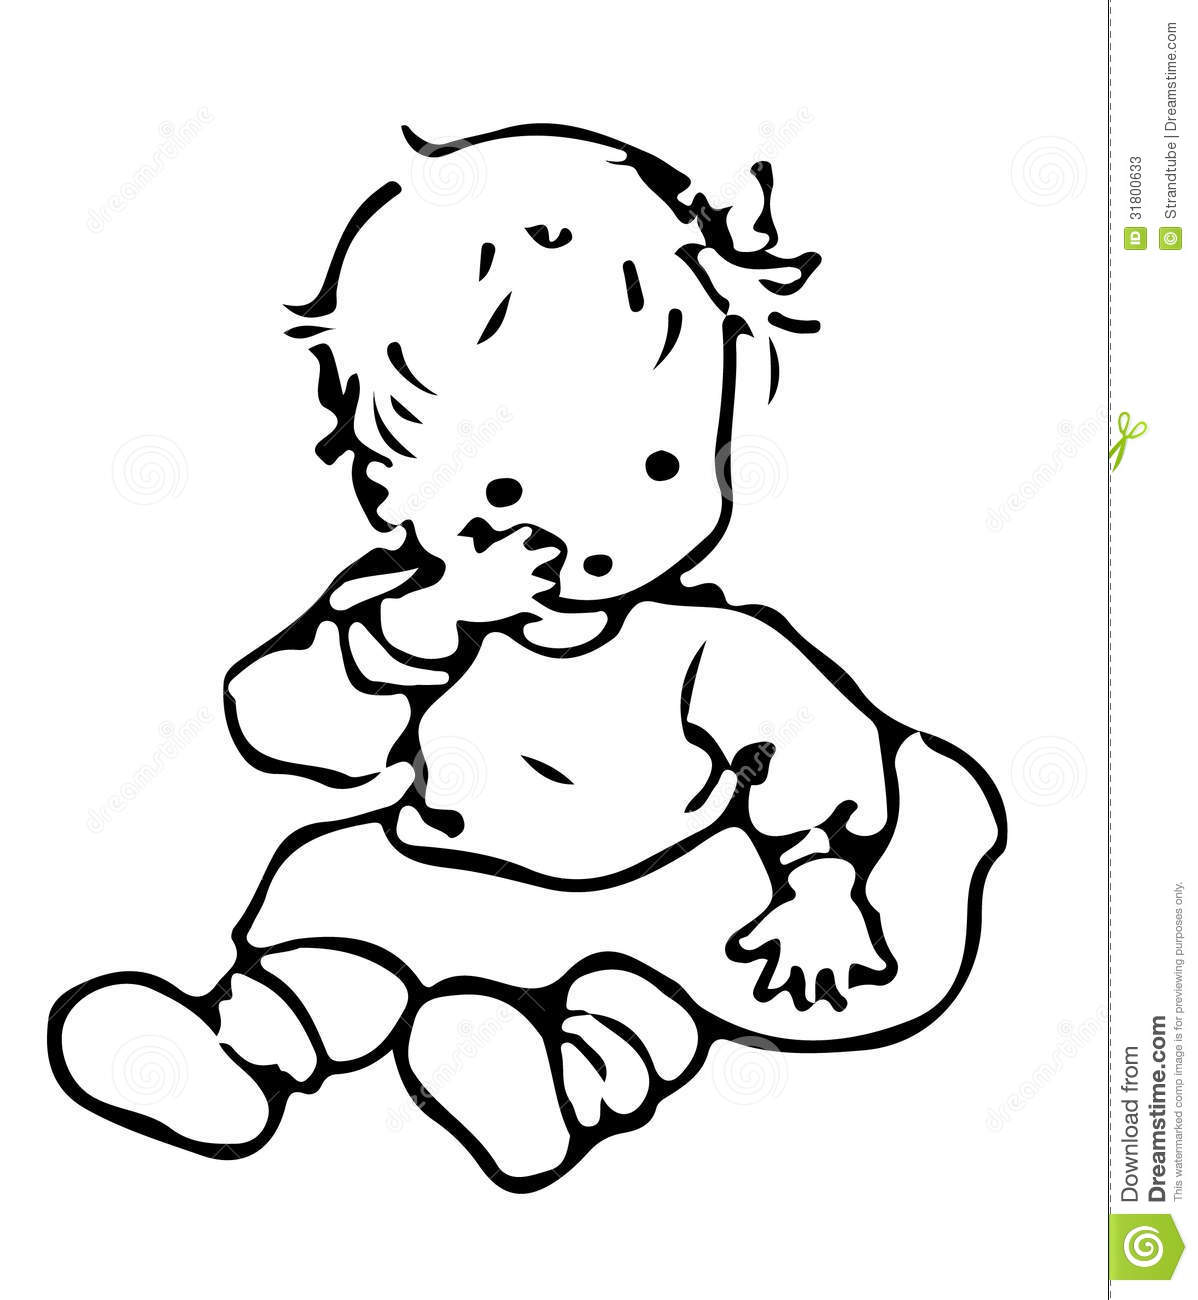 Line Drawing Baby : Stock photos baby image